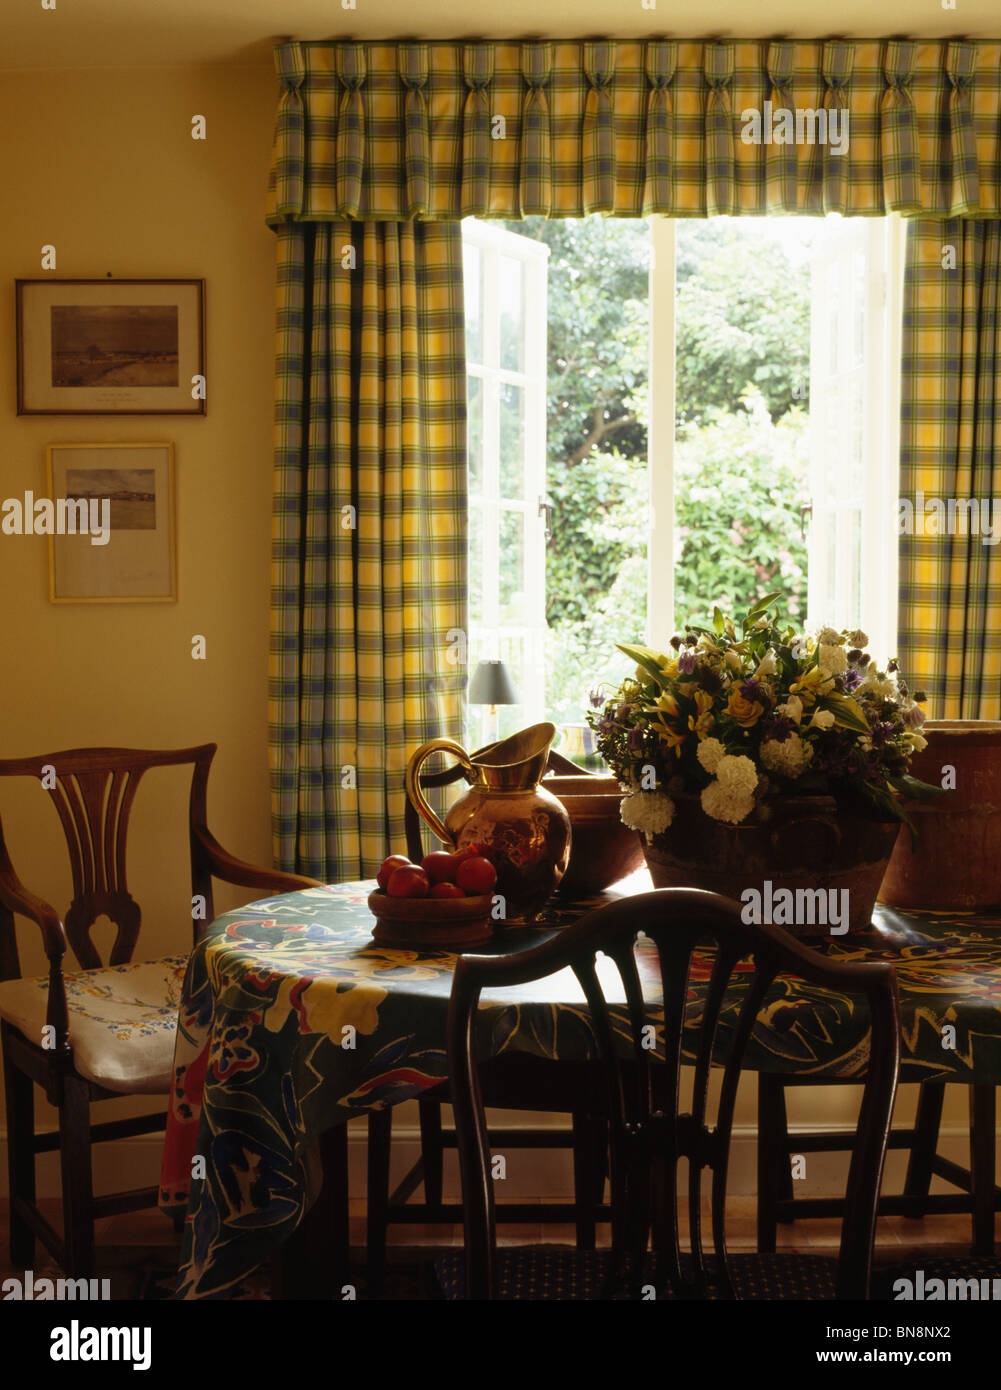 Yellow Checked Curtains On French Windows In Dining Room With Flowers In  Vase On Table With Floral PVC Cloth